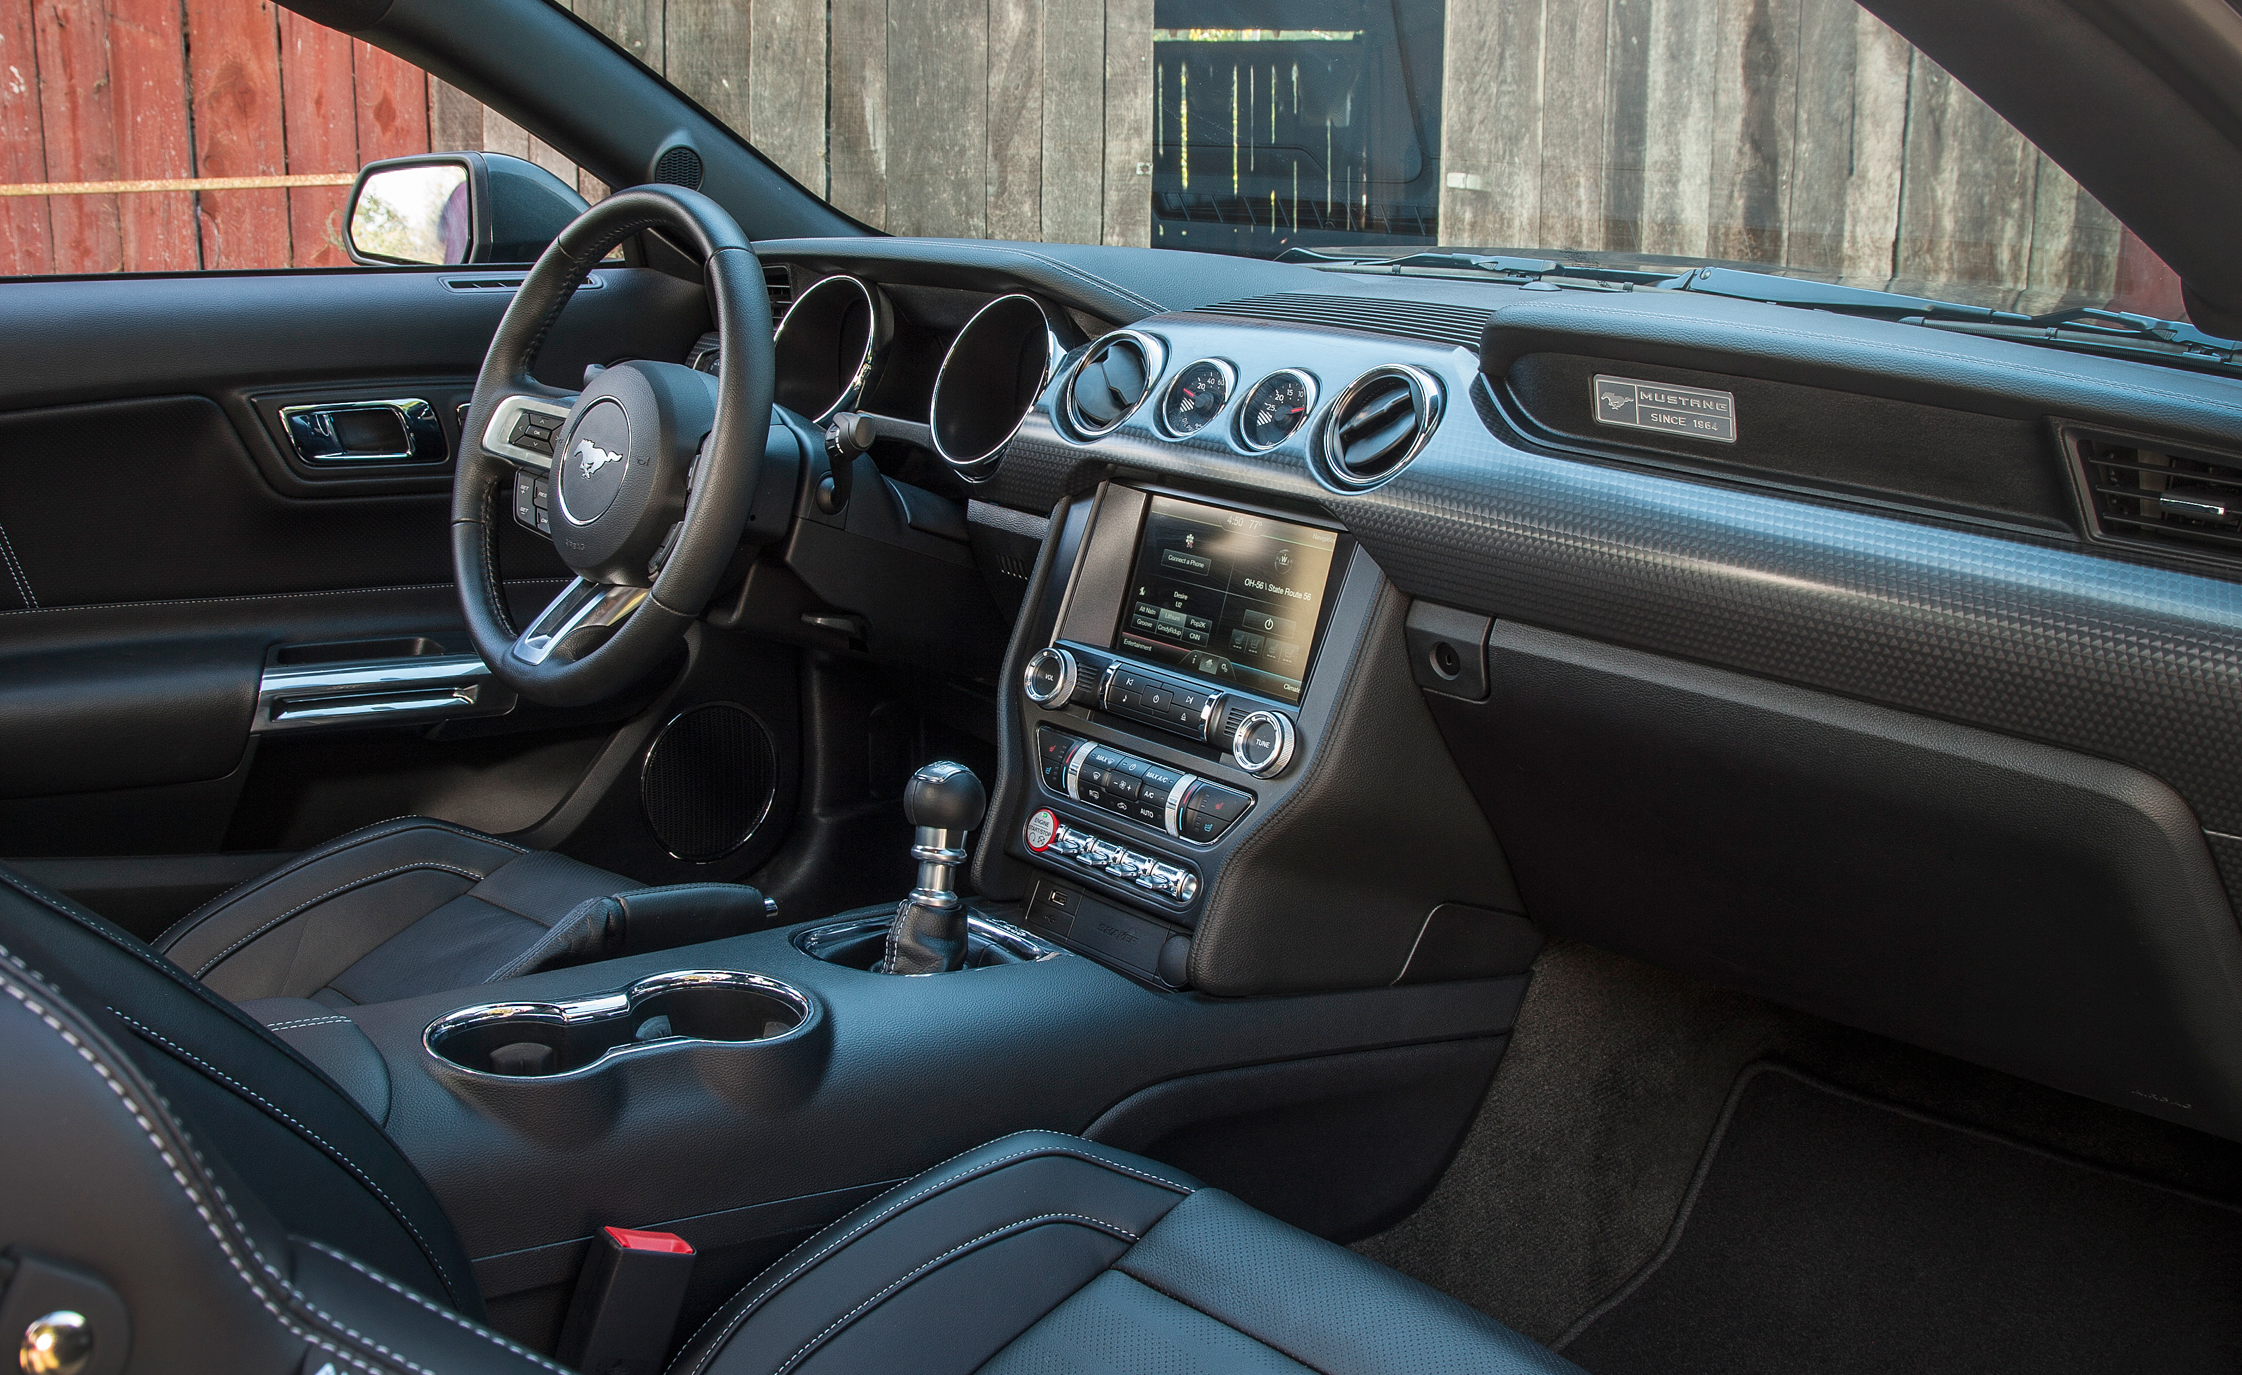 2015 ford mustang gt front interior preview - Ford Gt40 2015 Interior